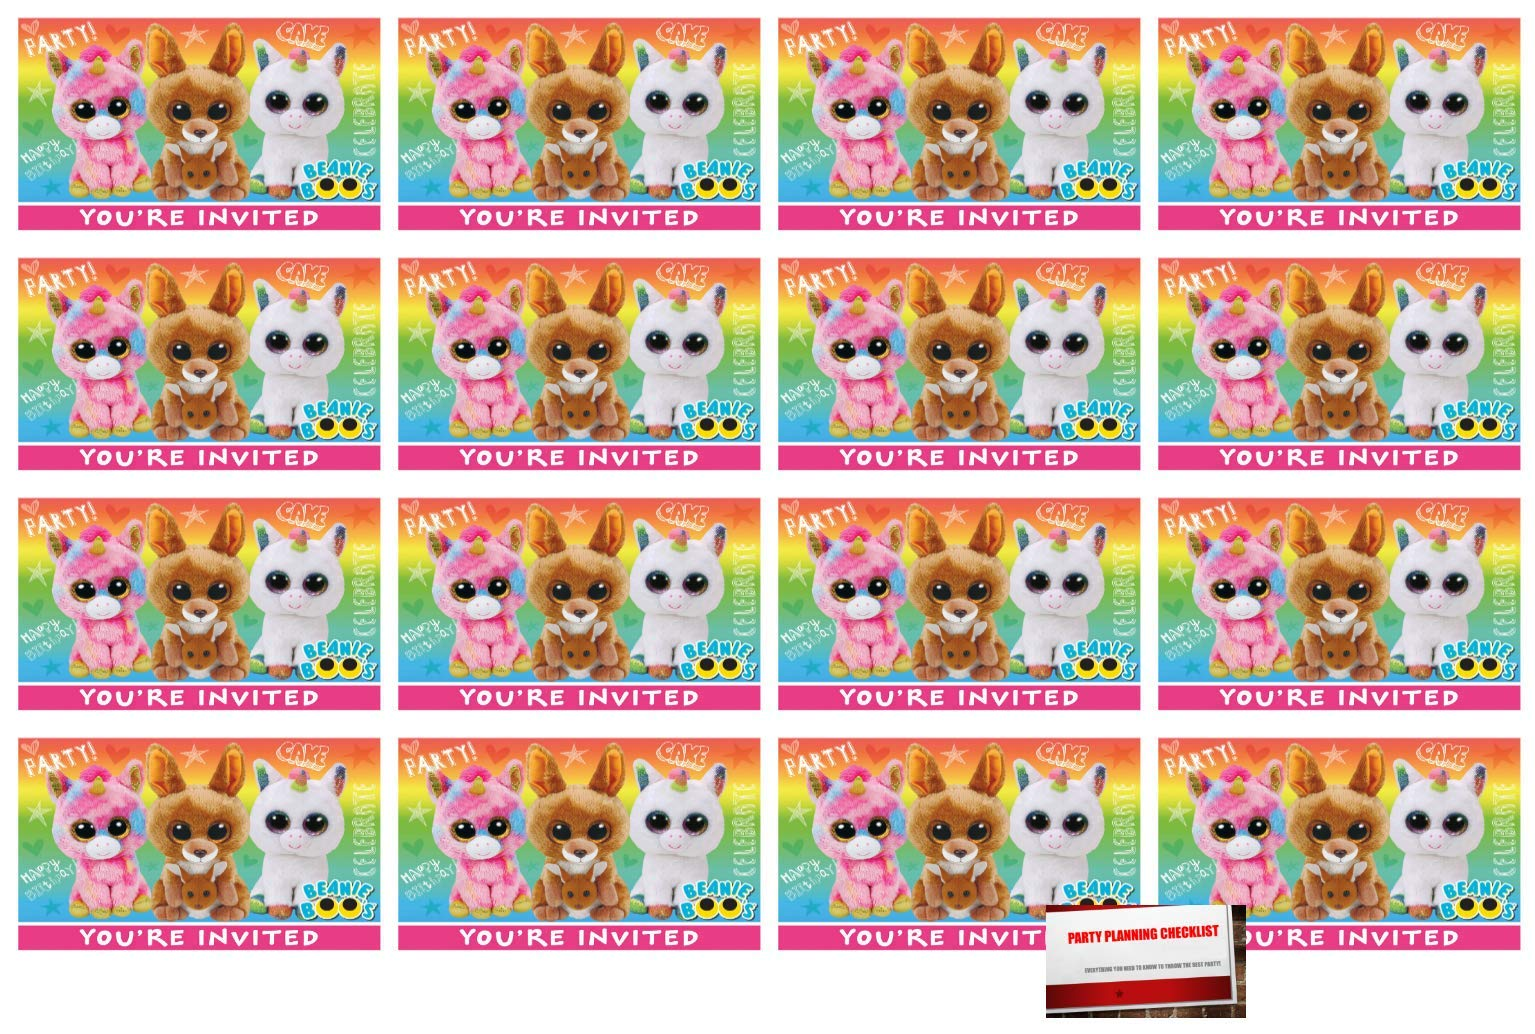 3c28606957 BEANIE BOOS 16 Postcard Invitations Birthday Party Supplies Value Pack Plus  Party Planning Checklist